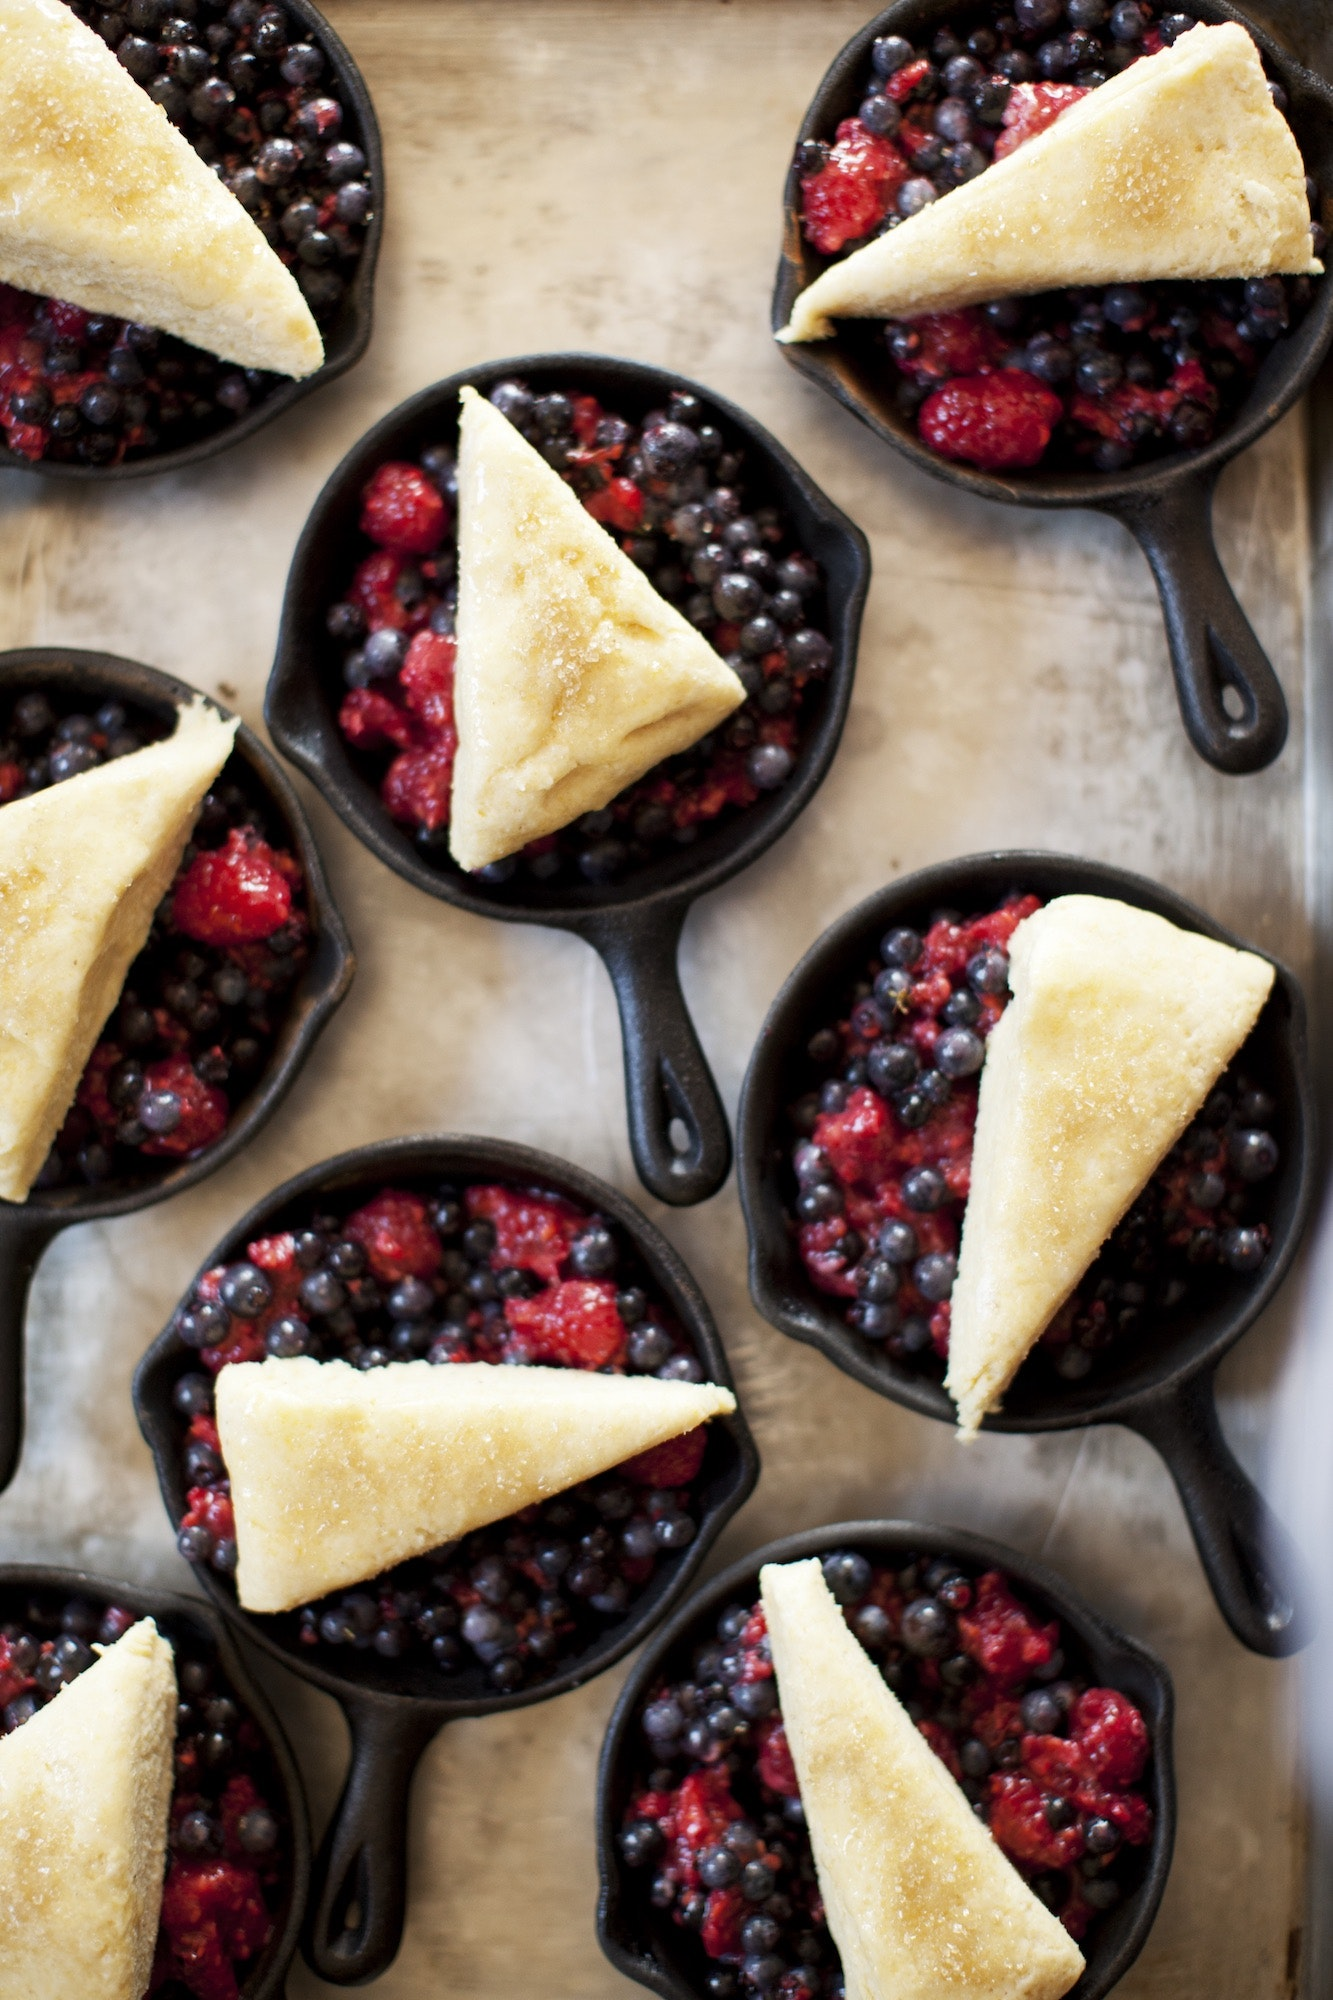 Homemade meals include a delectable mixed berry cobbler for dessert.